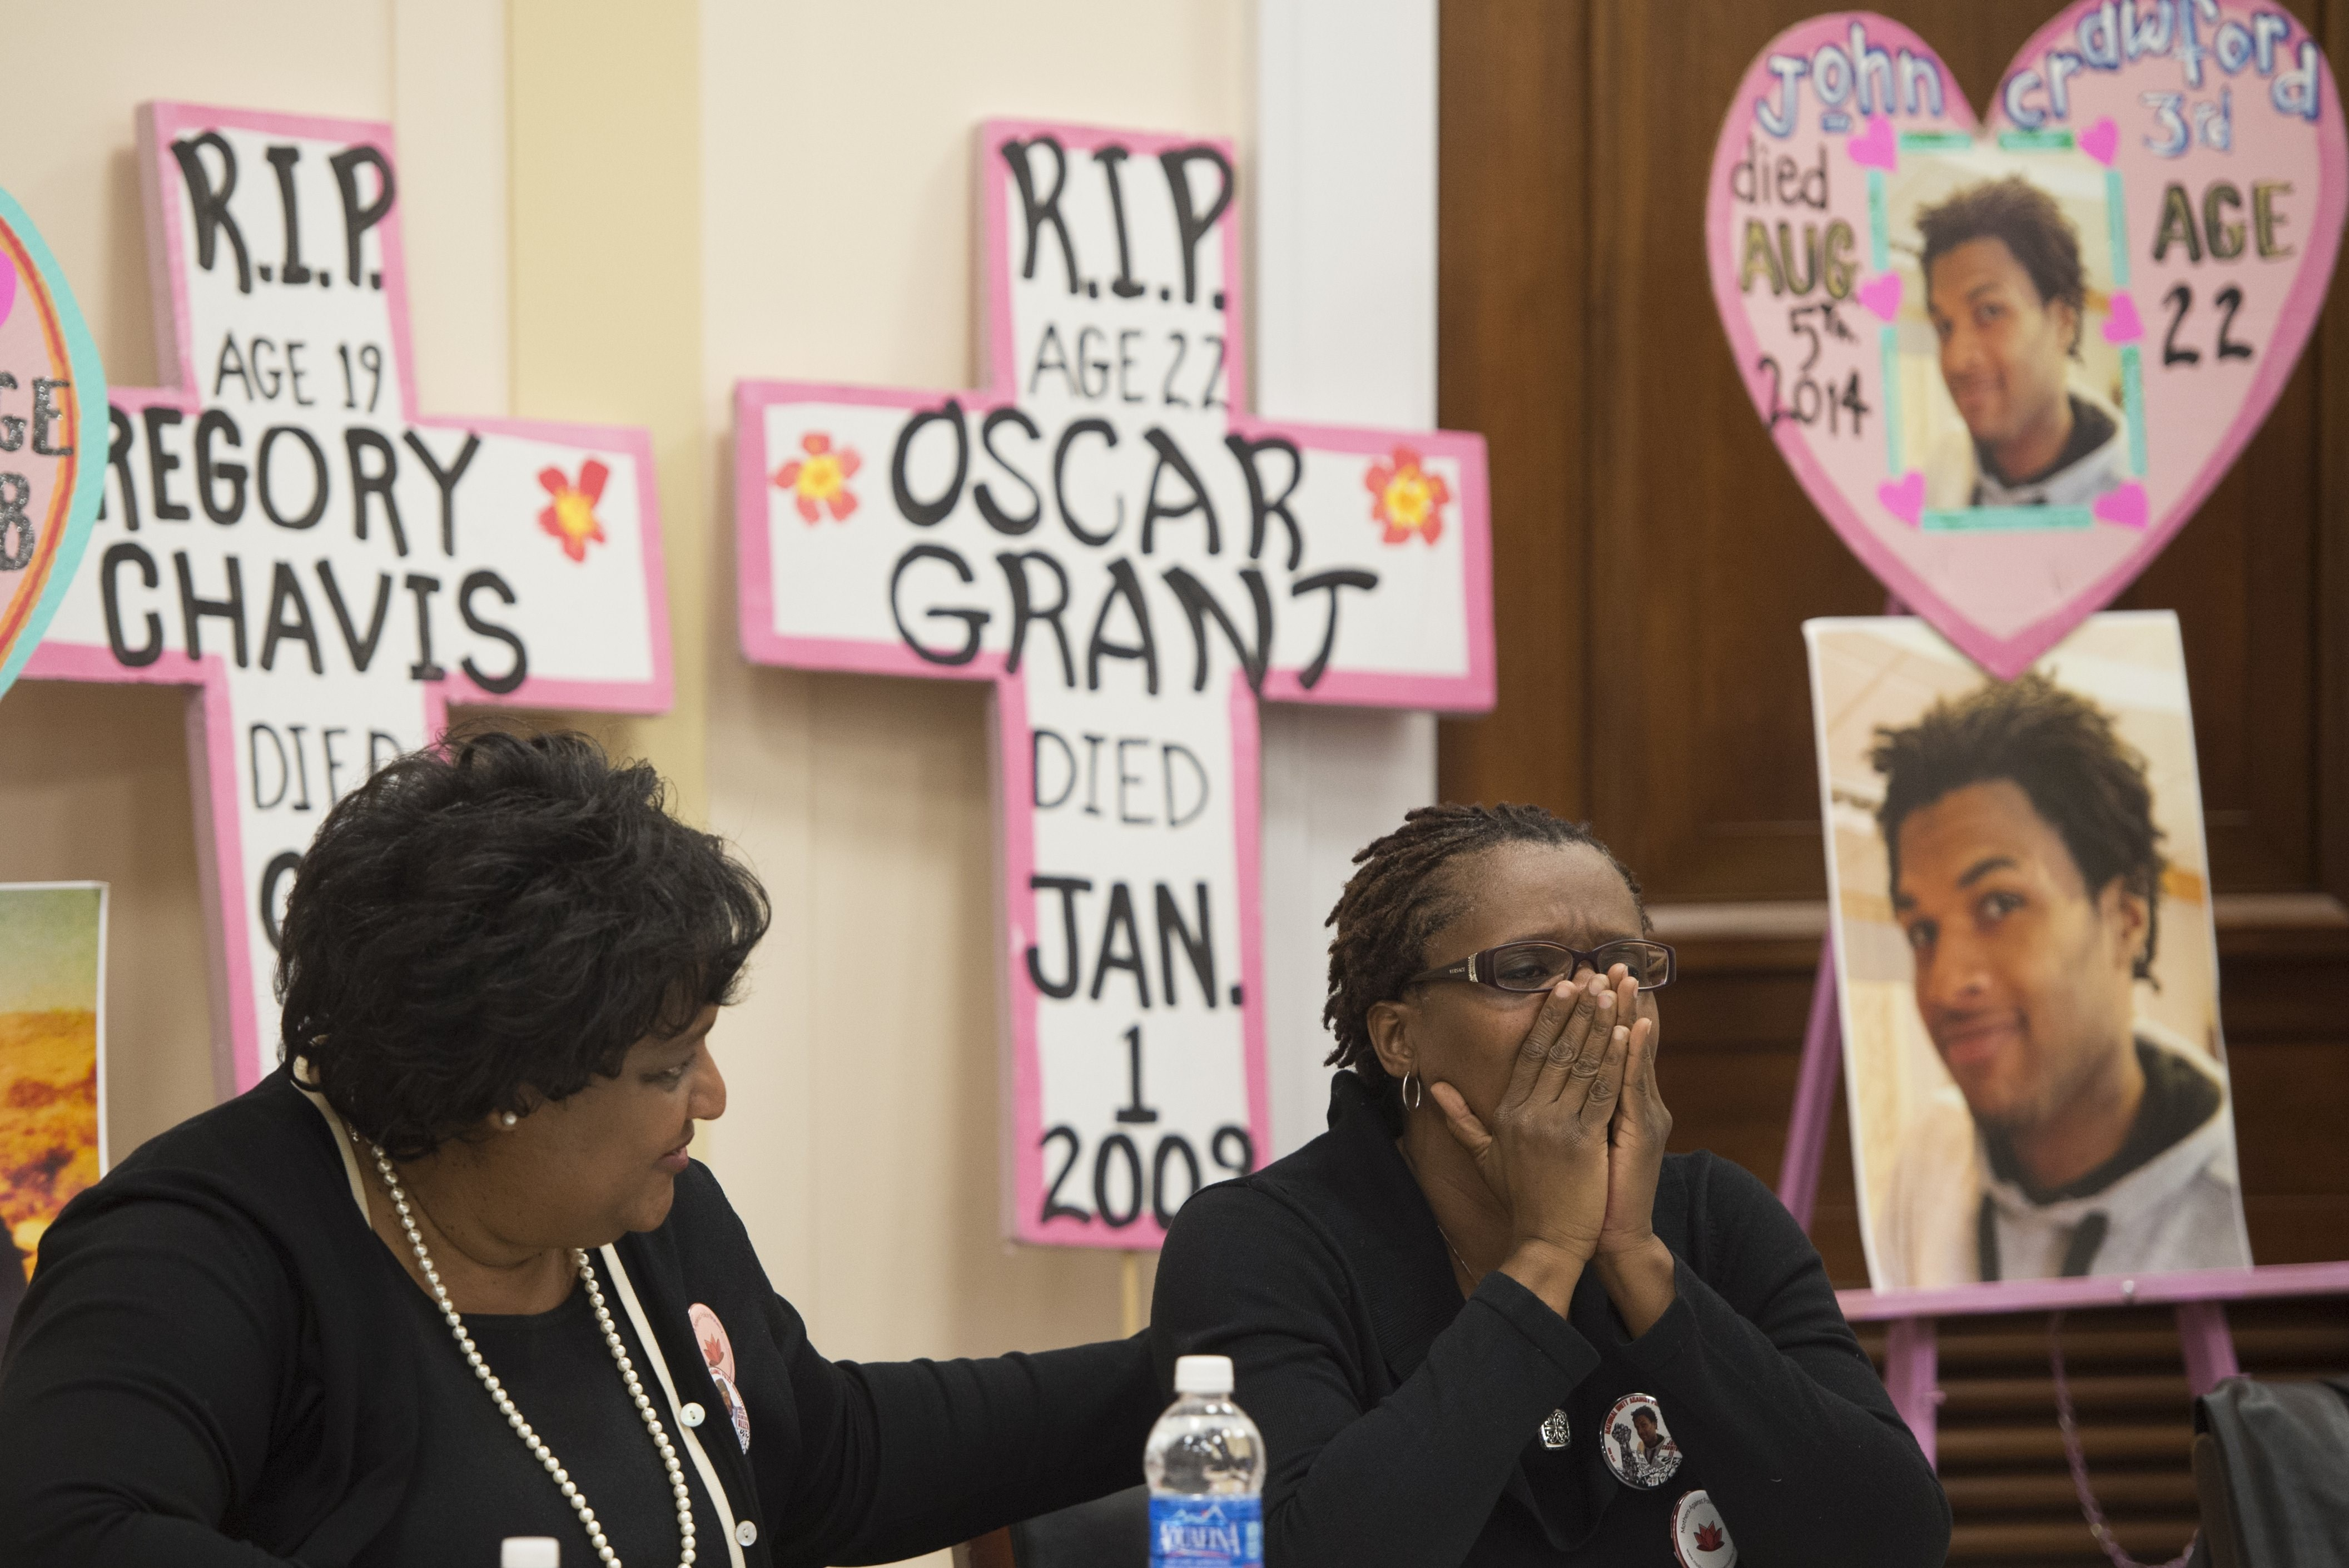 Mothers who have lost sons due to police action, including Tressa Sherrod (R), mother of 22-year-old John Crawford III, attend a press conference calling for police accountability and reform on Capitol Hill in Washington on Dec. 10, 2014.